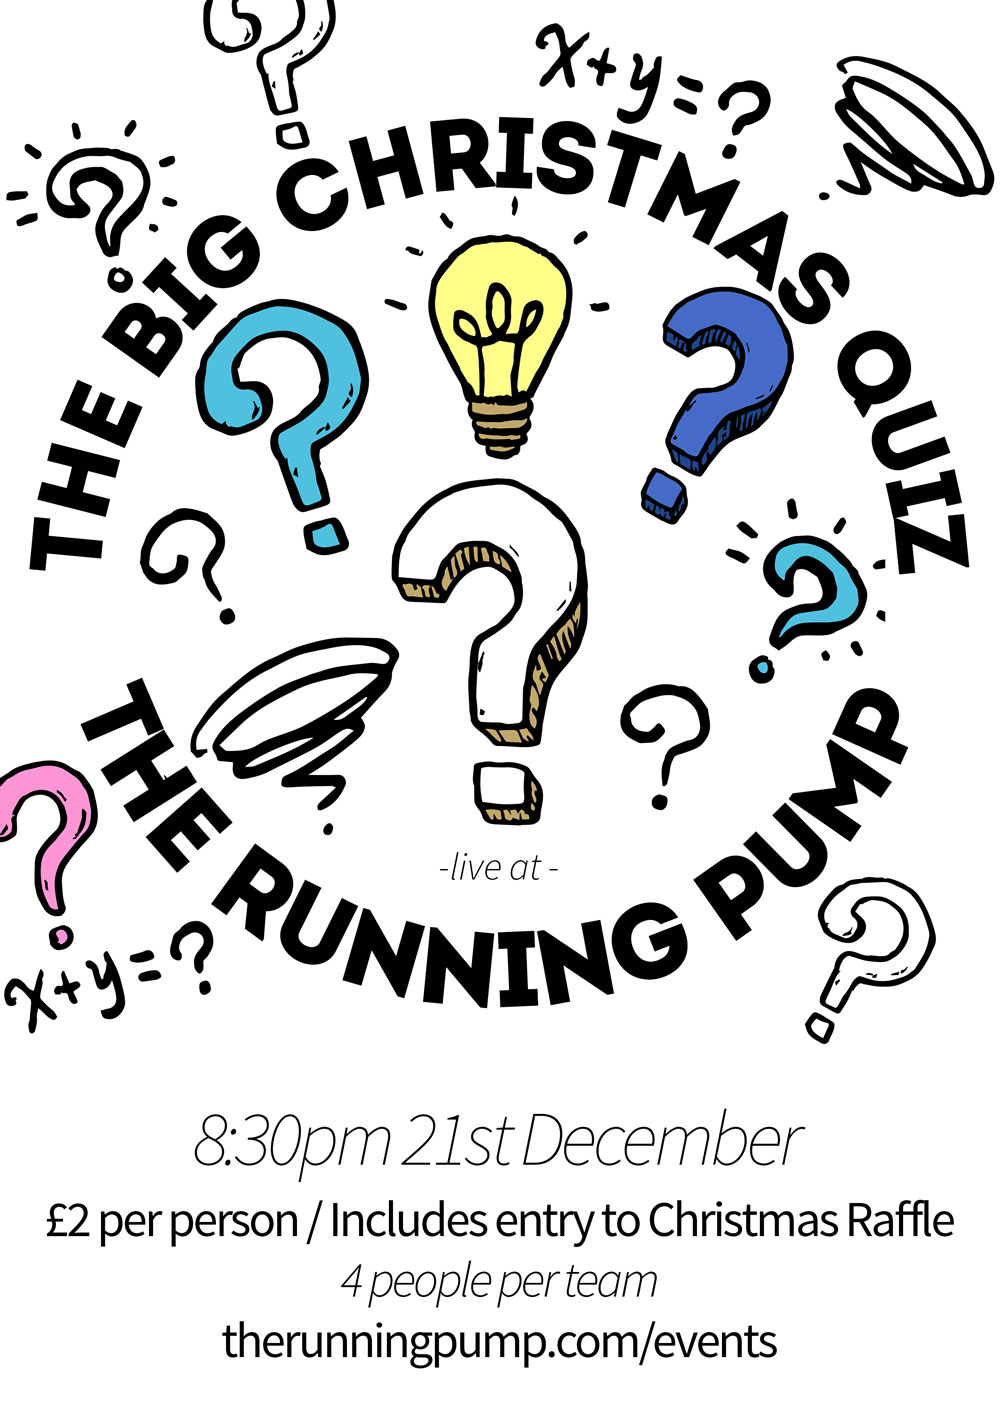 CHRISTMAS QUIZ - Thursday 21st December // 8:30pm // Hosted by local funny man, Vaughn // £2 Per Person // 4 People per Team1st Prize: Win of Entry Fees + 8 Pints or 2 Bottles of WineRunners Up: 4 Pints or 1 Bottle of Wine.